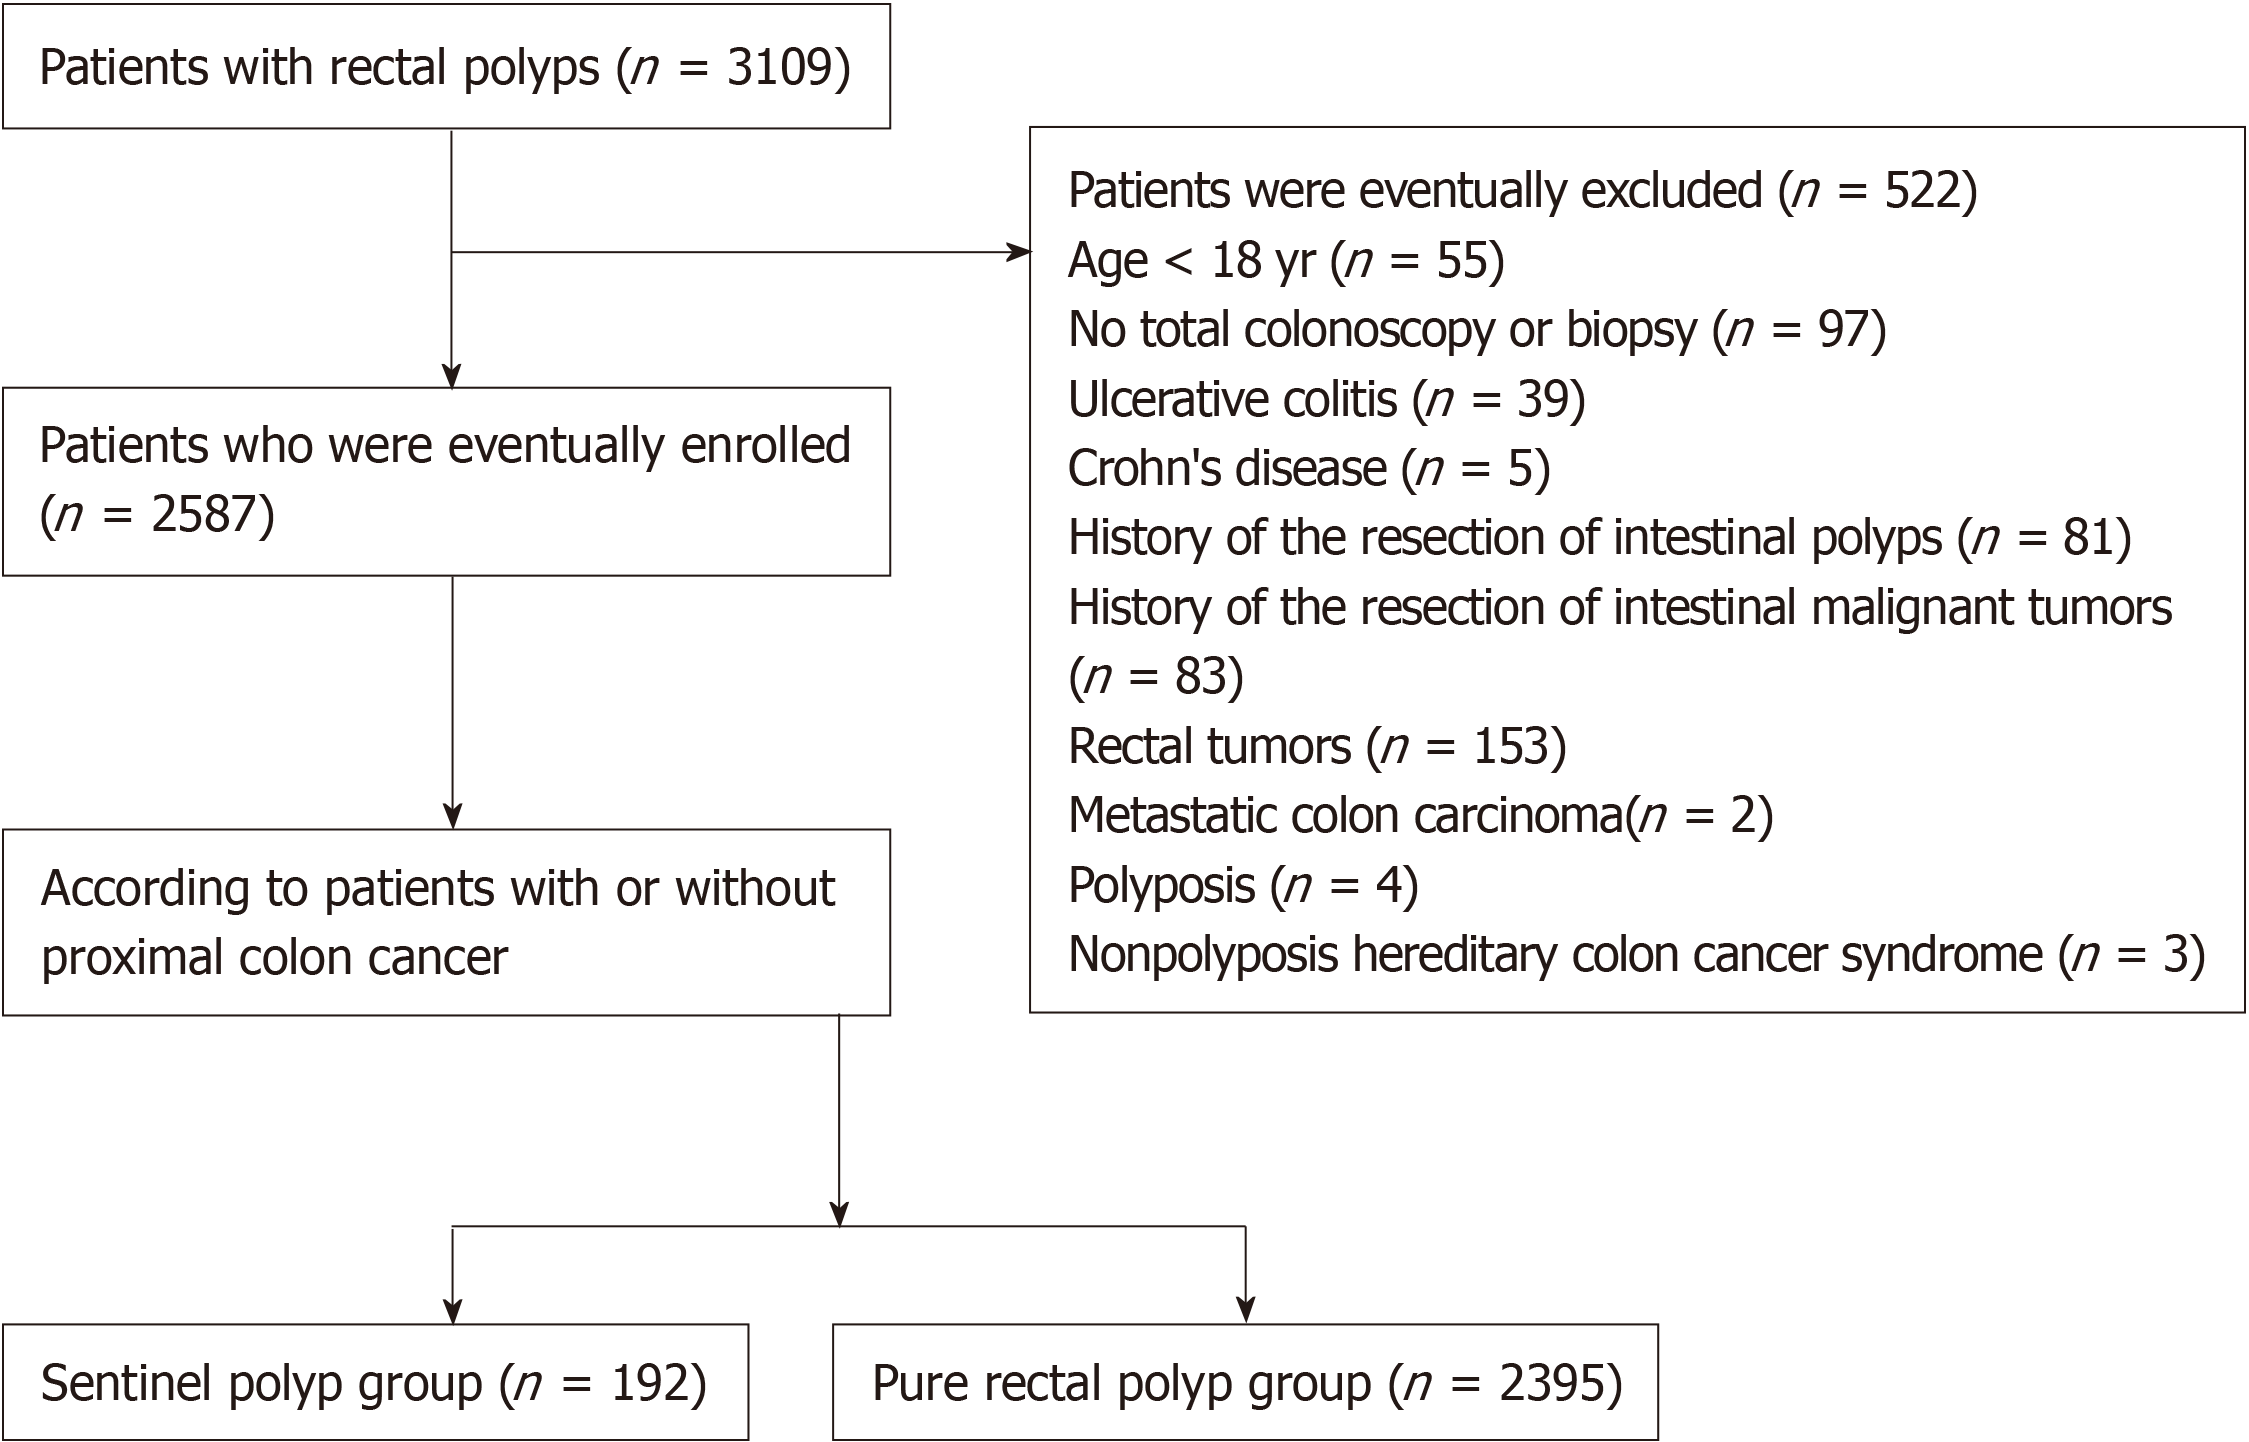 Clinical Characteristics Of Sentinel Polyps And Their Correlation With Proximal Colon Cancer A Retrospective Observational Study